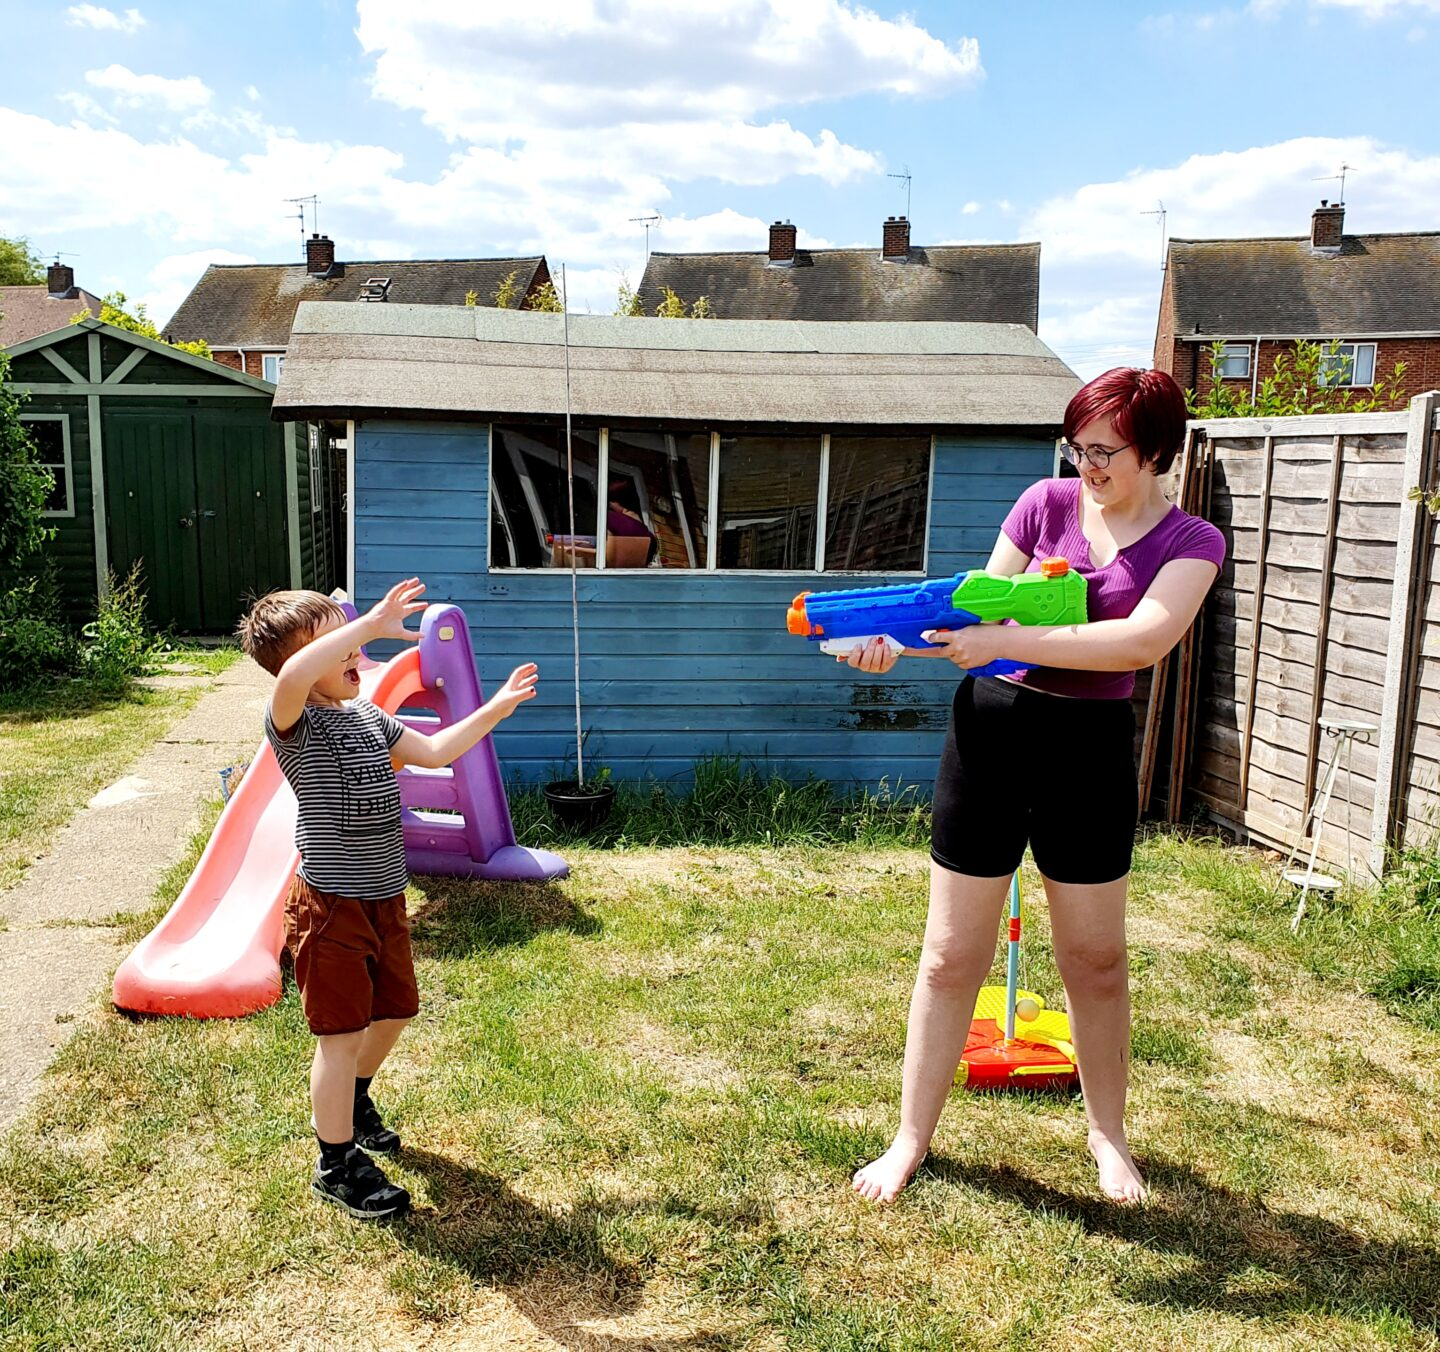 Water fights and Caterpillars – Living Arrows Week 26 2020